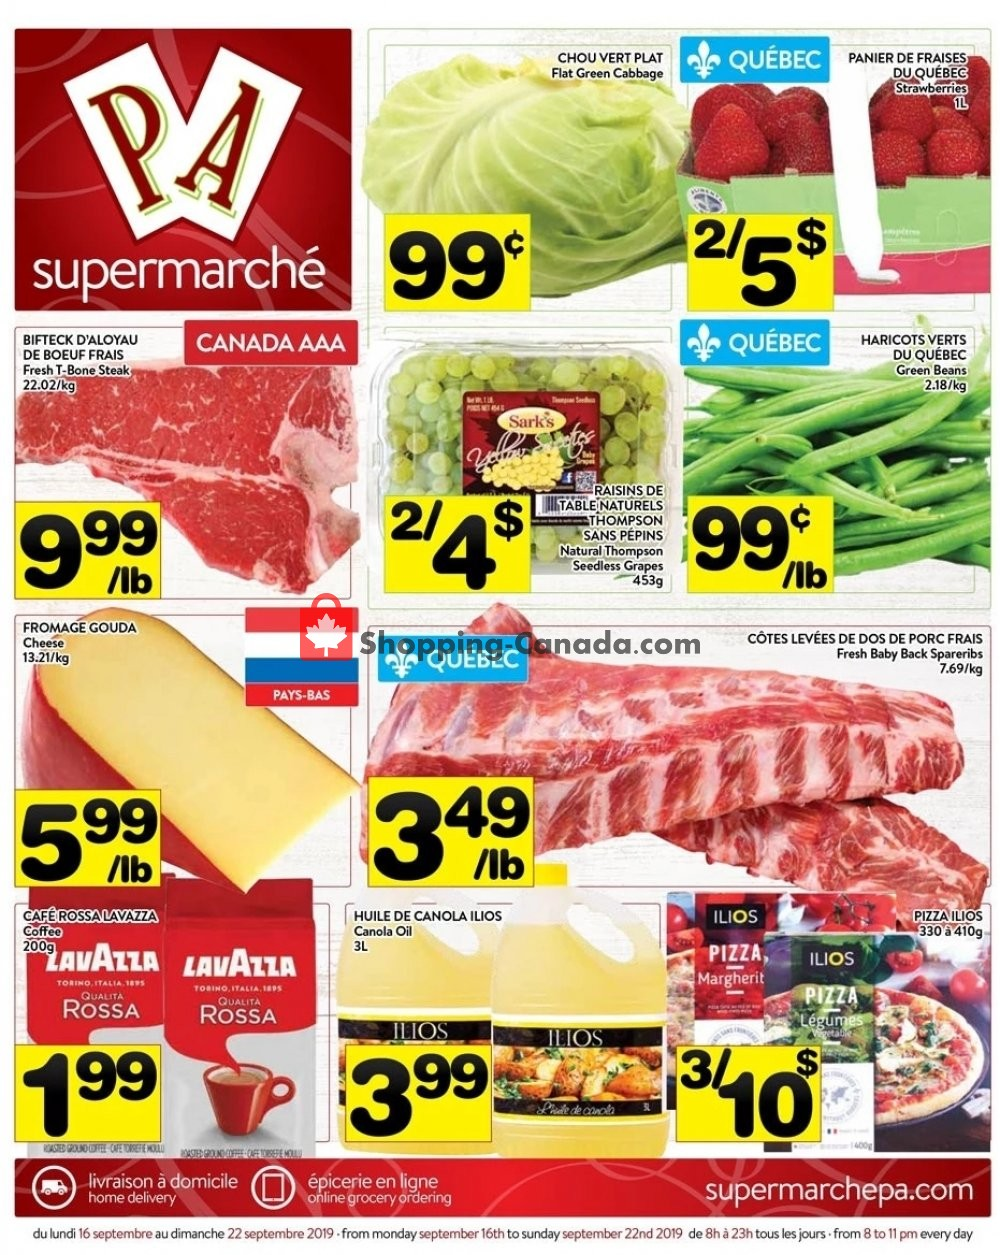 Flyer Supermarché PA Canada - from Monday September 16, 2019 to Sunday September 22, 2019